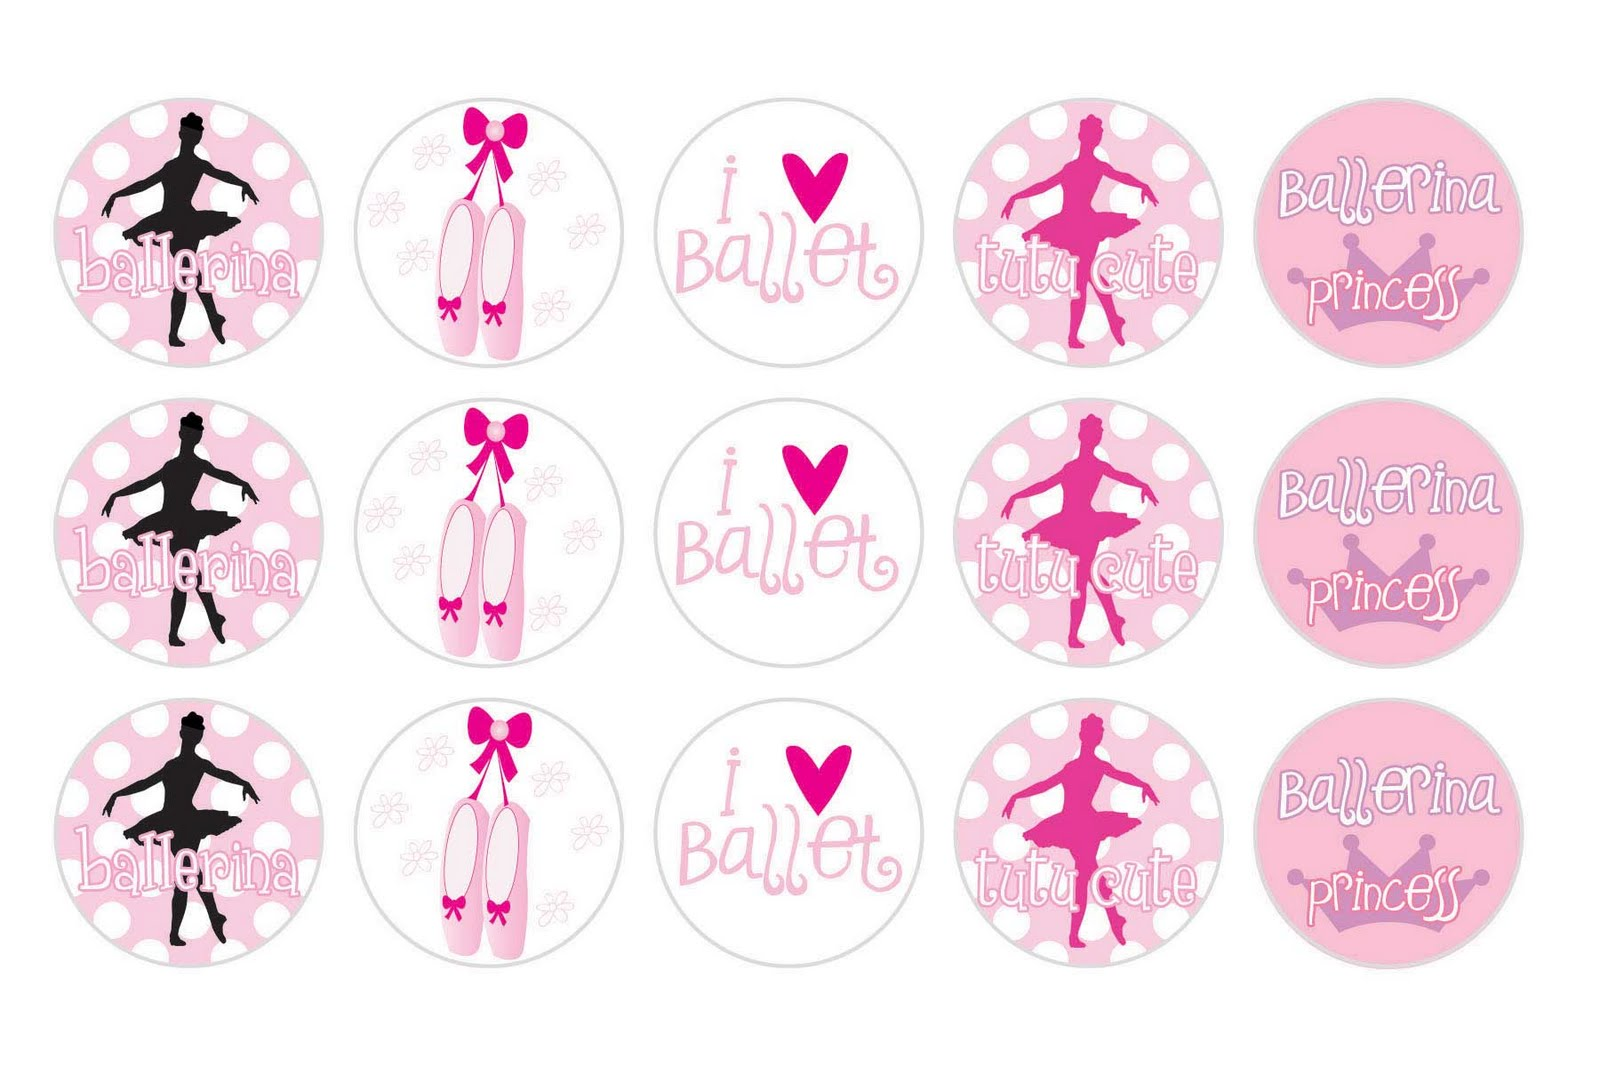 Free Printable Bottle Cap Designs